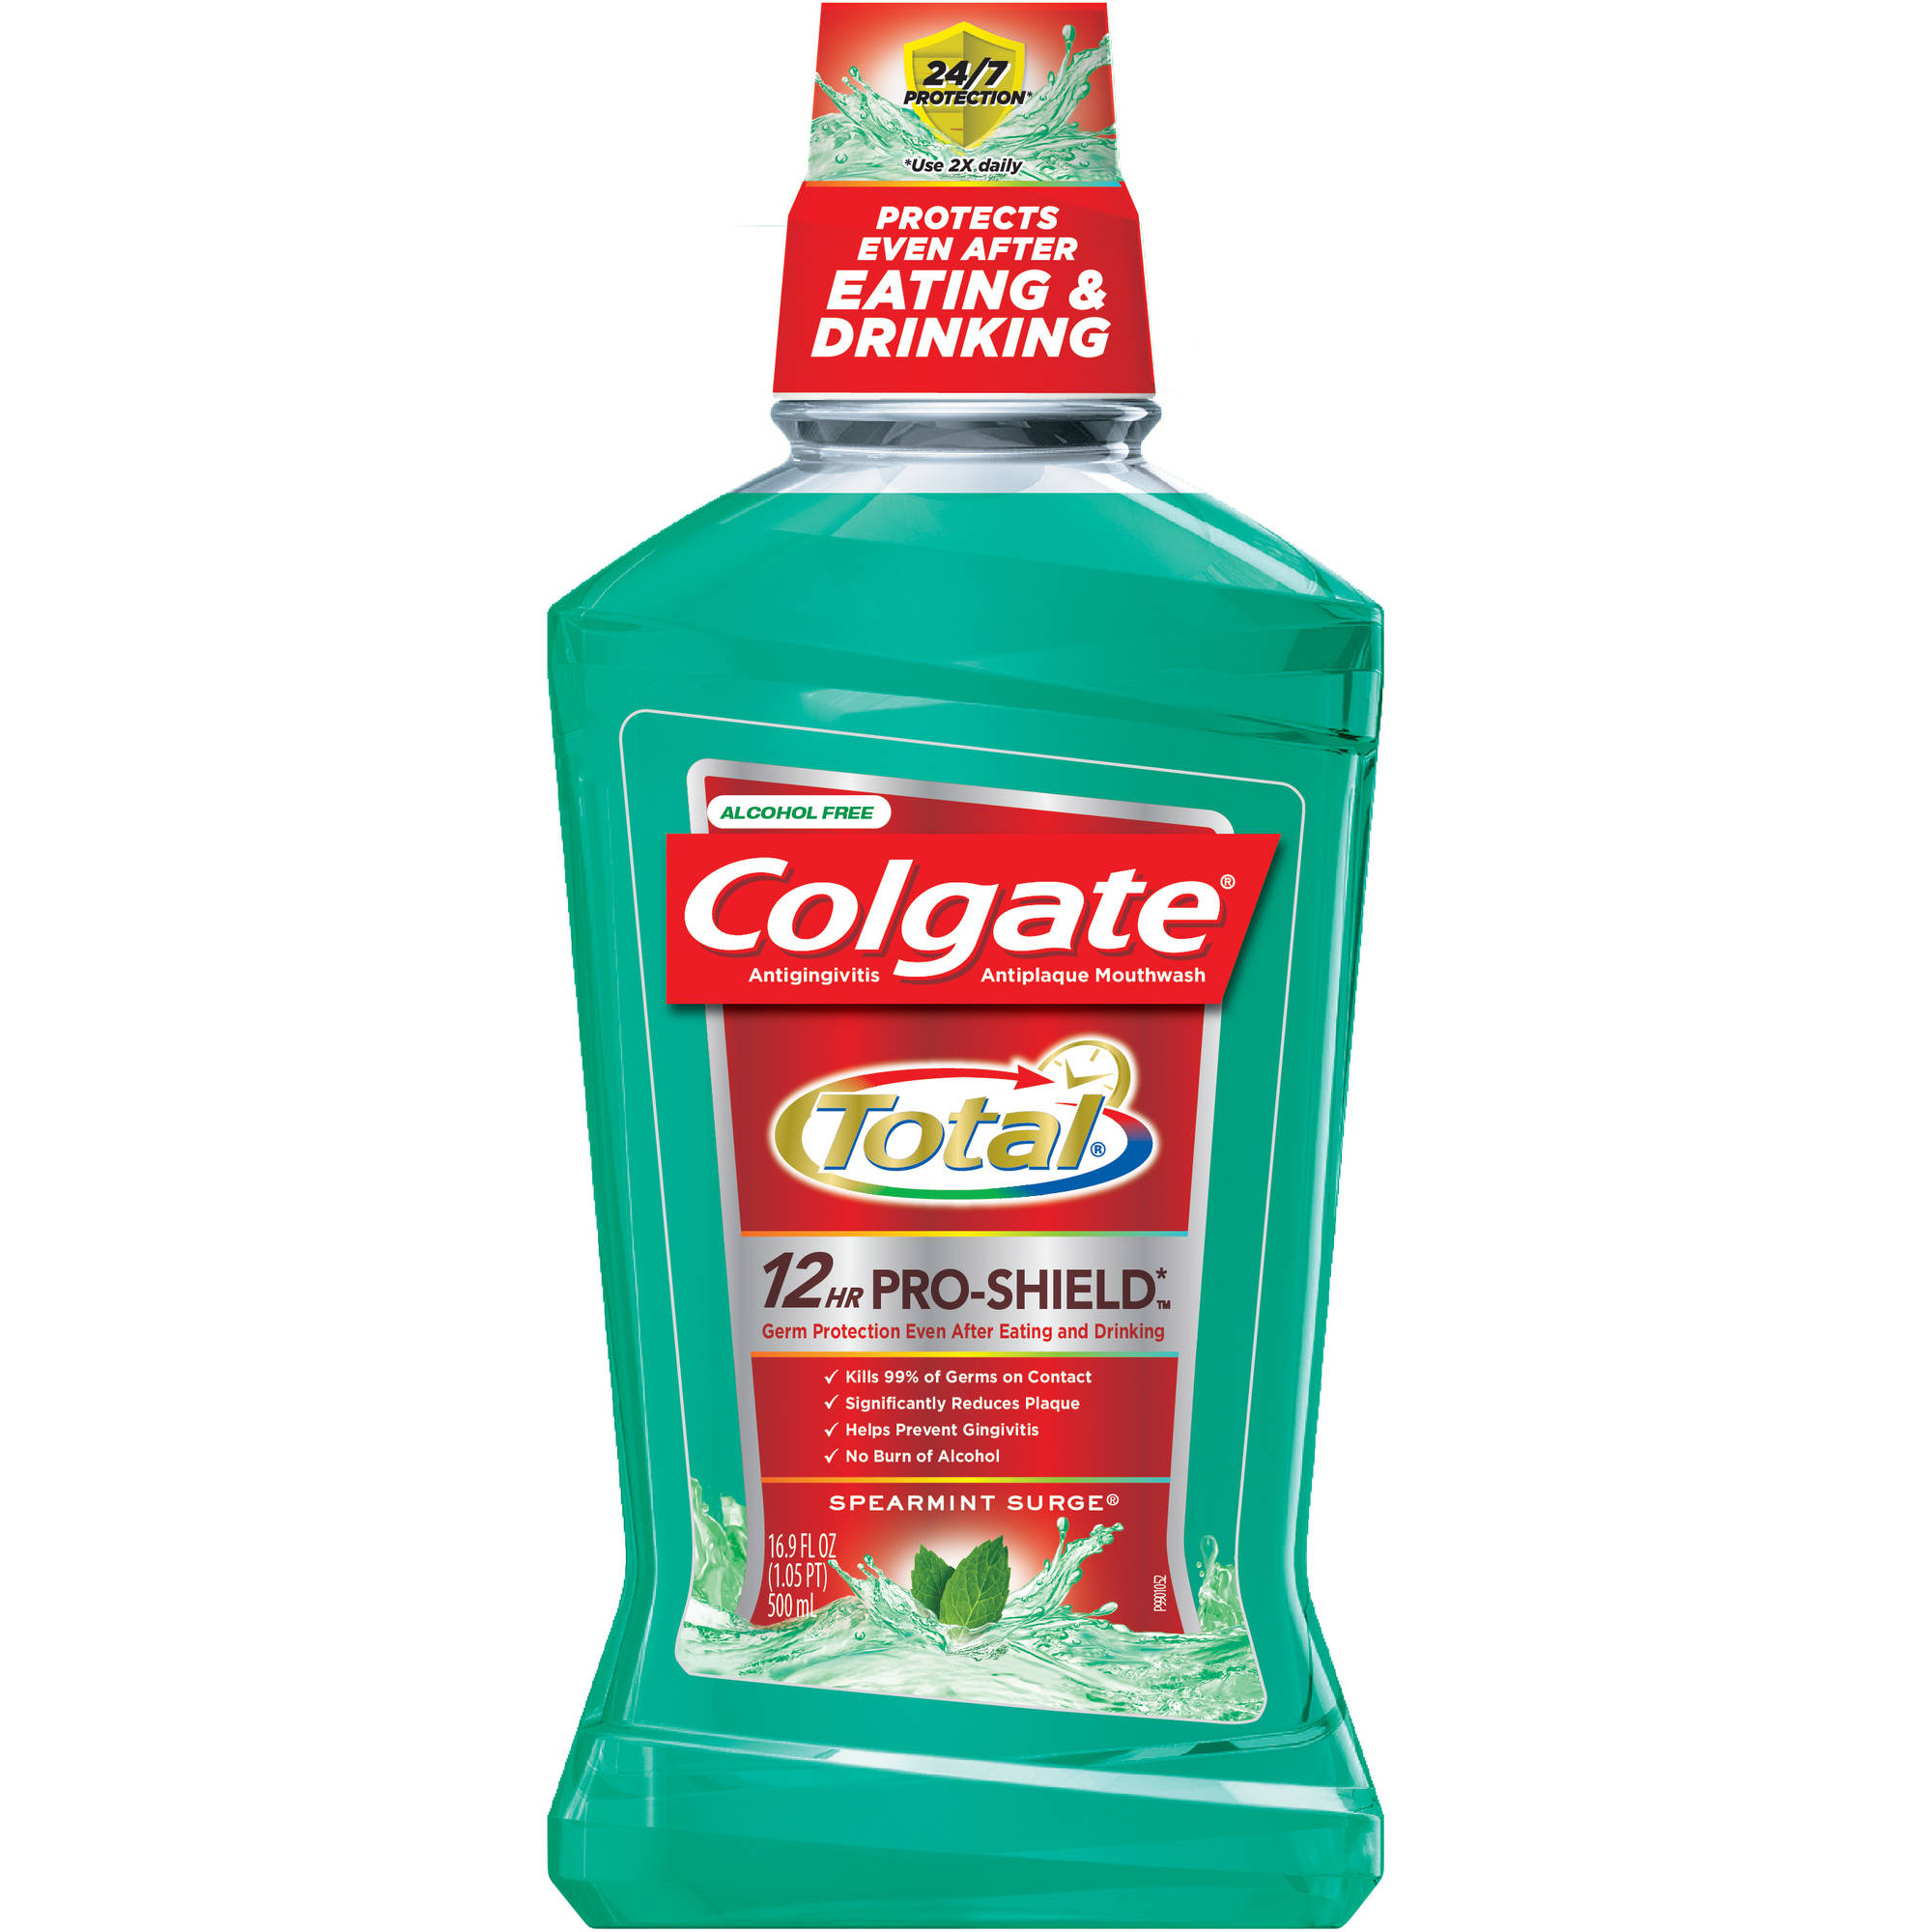 Colgate Total Advanced Pro-Shield Spearmint Surge Mouthwash, 16.9 fl oz